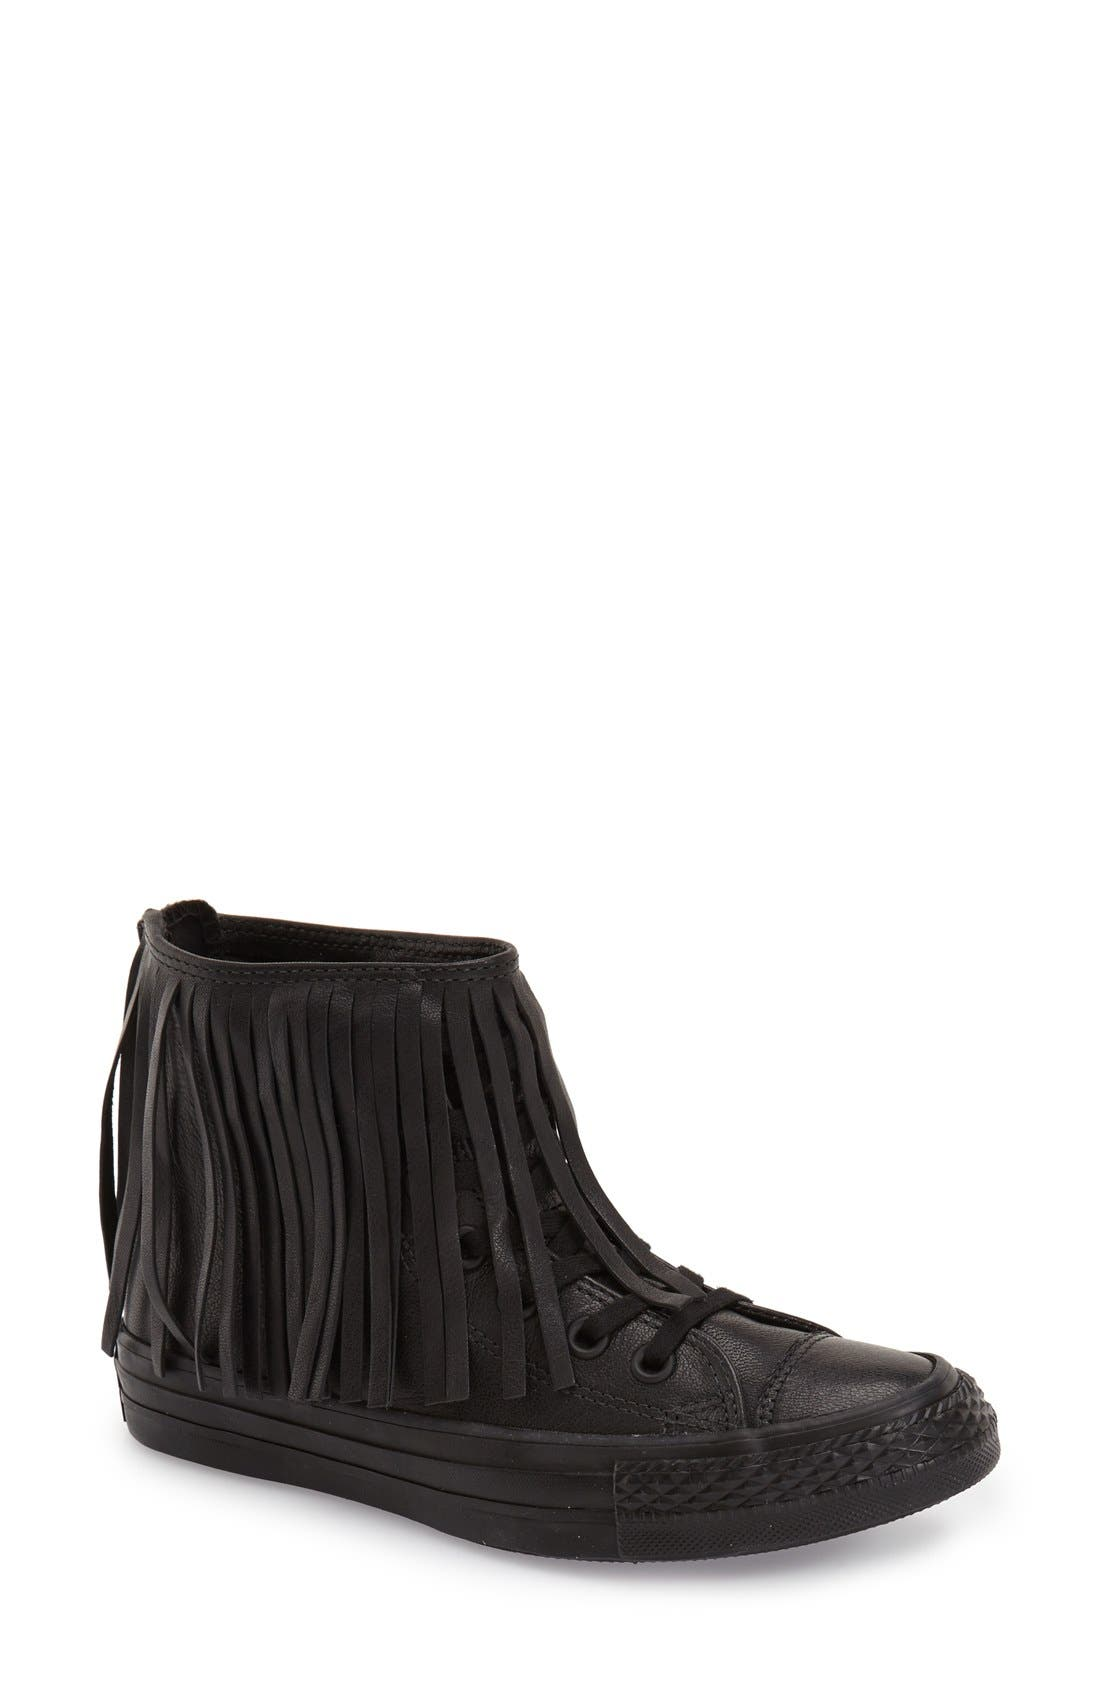 Alternate Image 1 Selected - Converse Chuck Taylor® All Star® Fringe Leather High Top Sneaker (Women)